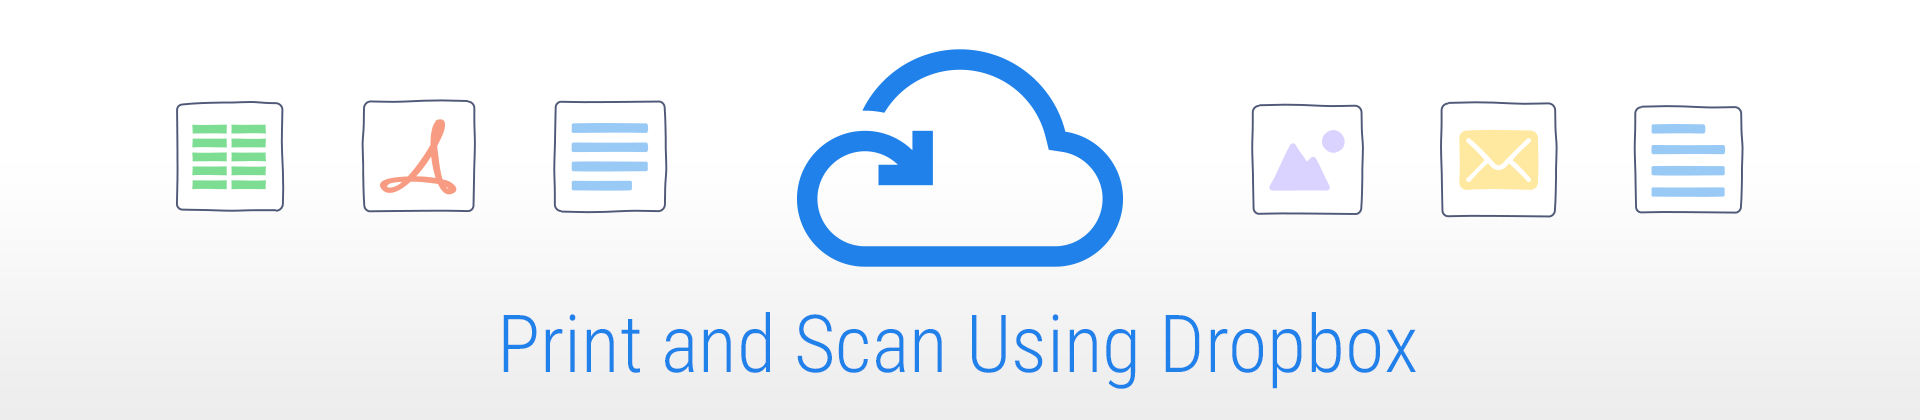 print and scan using dropbox